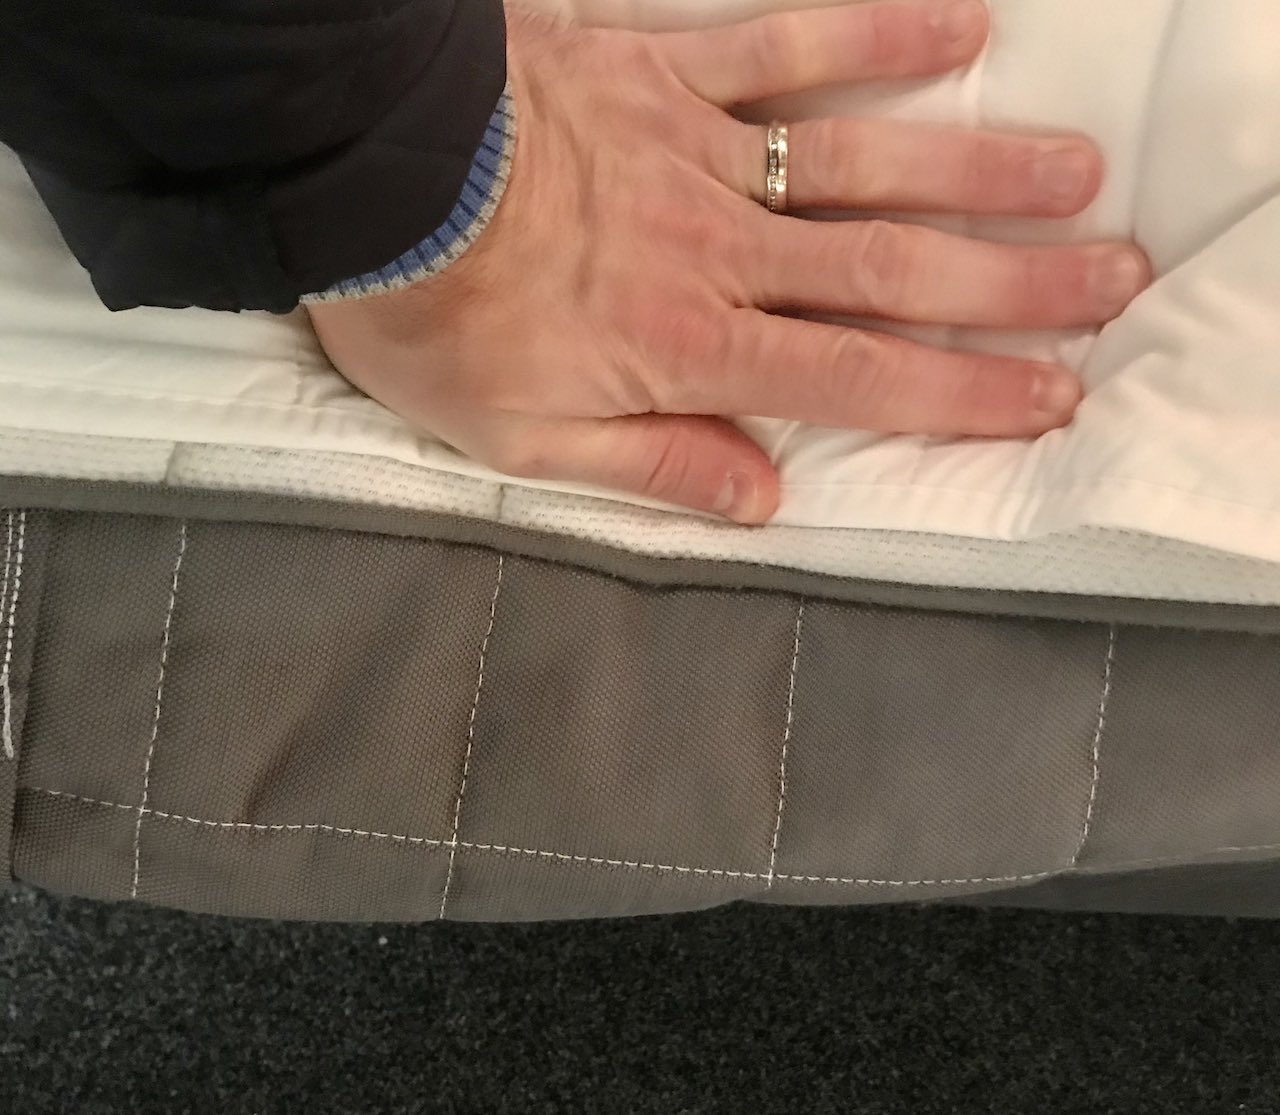 A hand pushing the side of an Ikea mattress